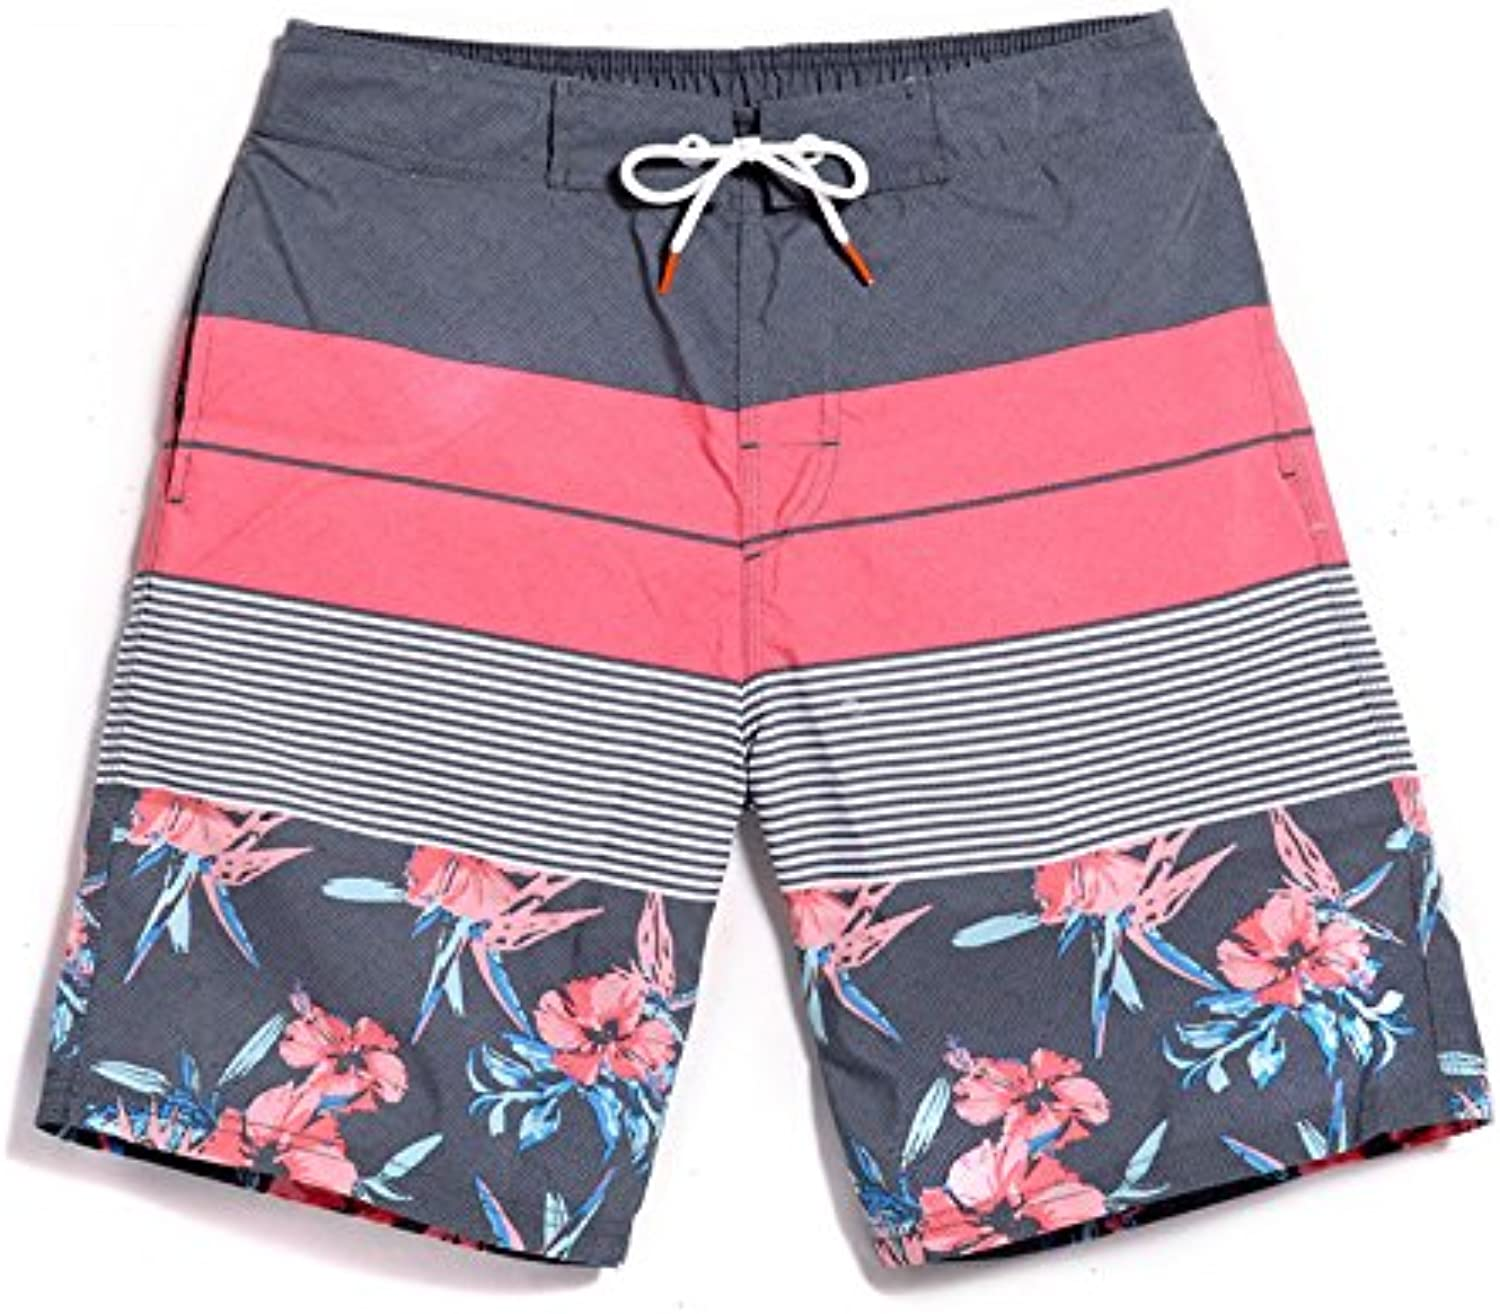 HAIYOUVK Male youth Beach pants Quick dry Large yard Loose Leisure Flower Shorts Waterproof Vacation Swimming trunks